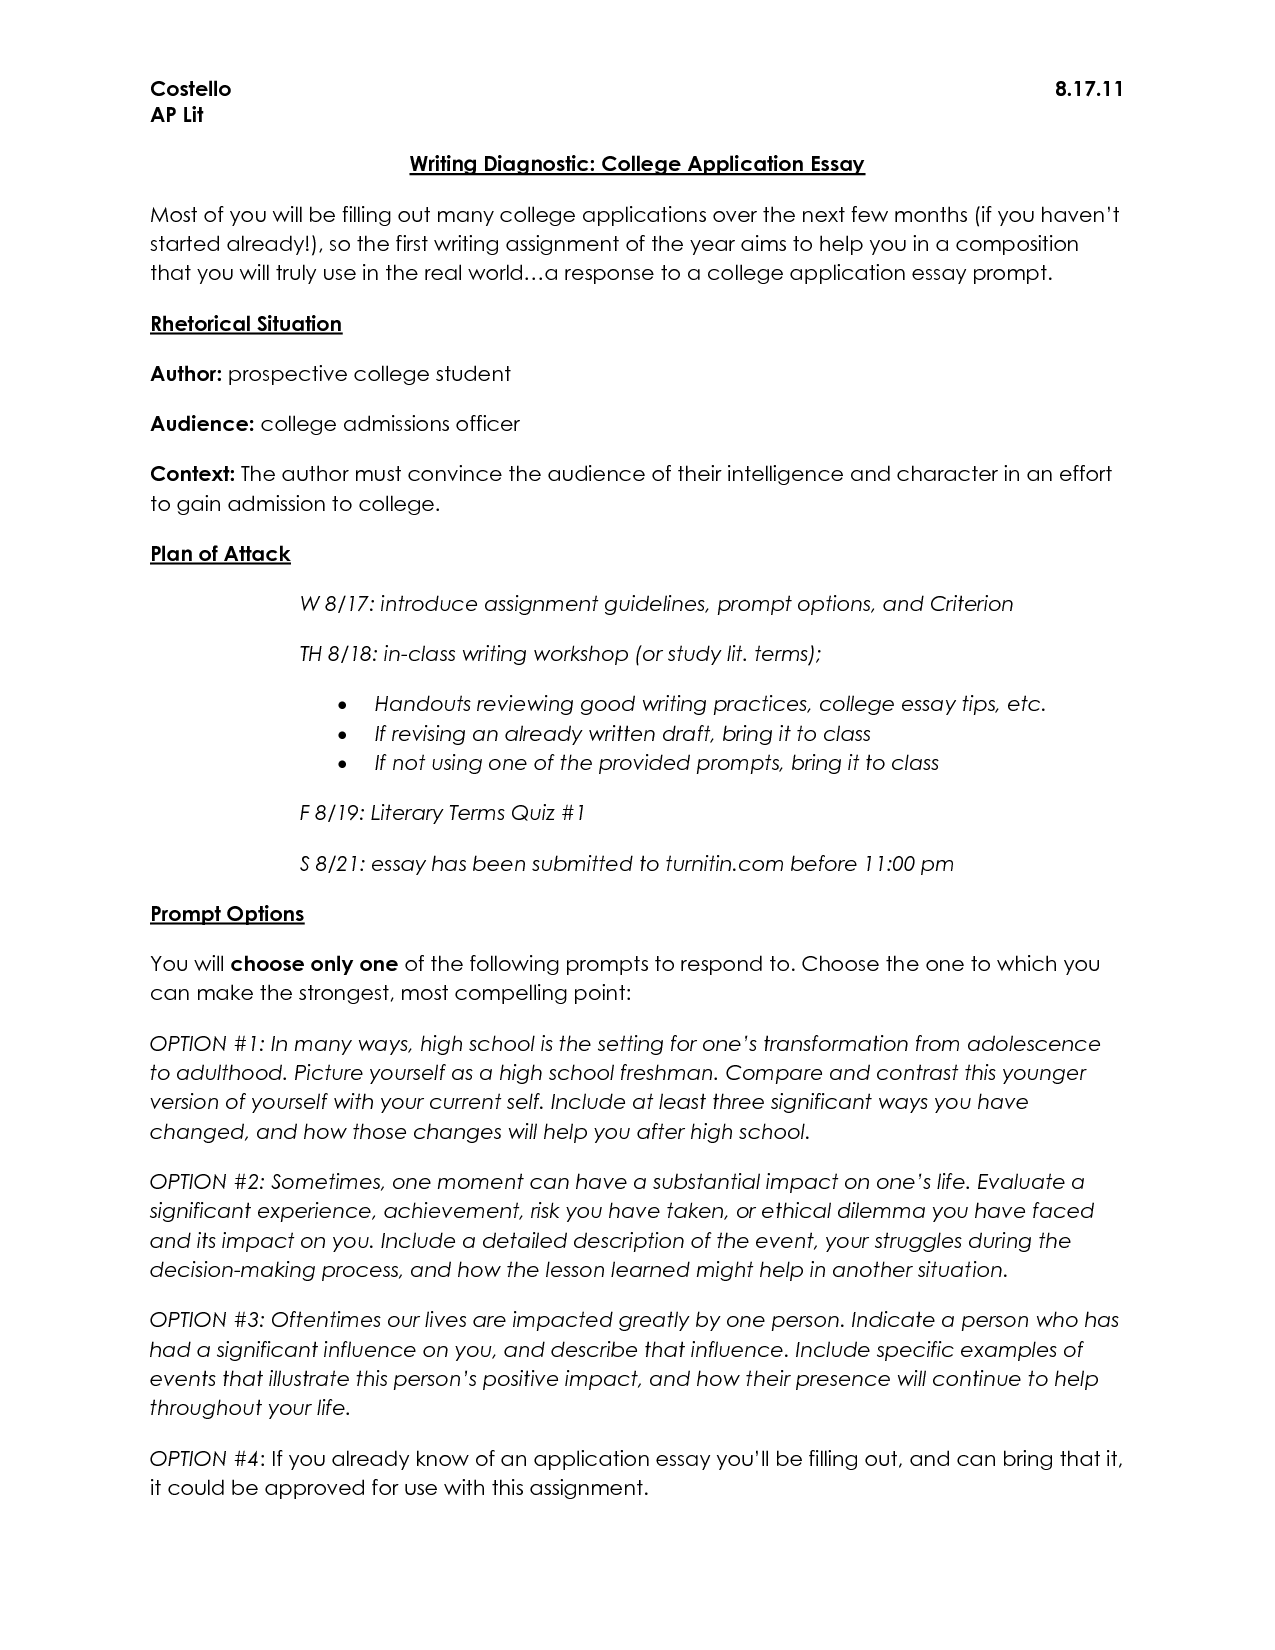 Science And Literature Essay Heading For College Essay How To Start A Synthesis Essay also Sample Business School Essays Heading For College Essay  Professional Writing Service College Essay Paper